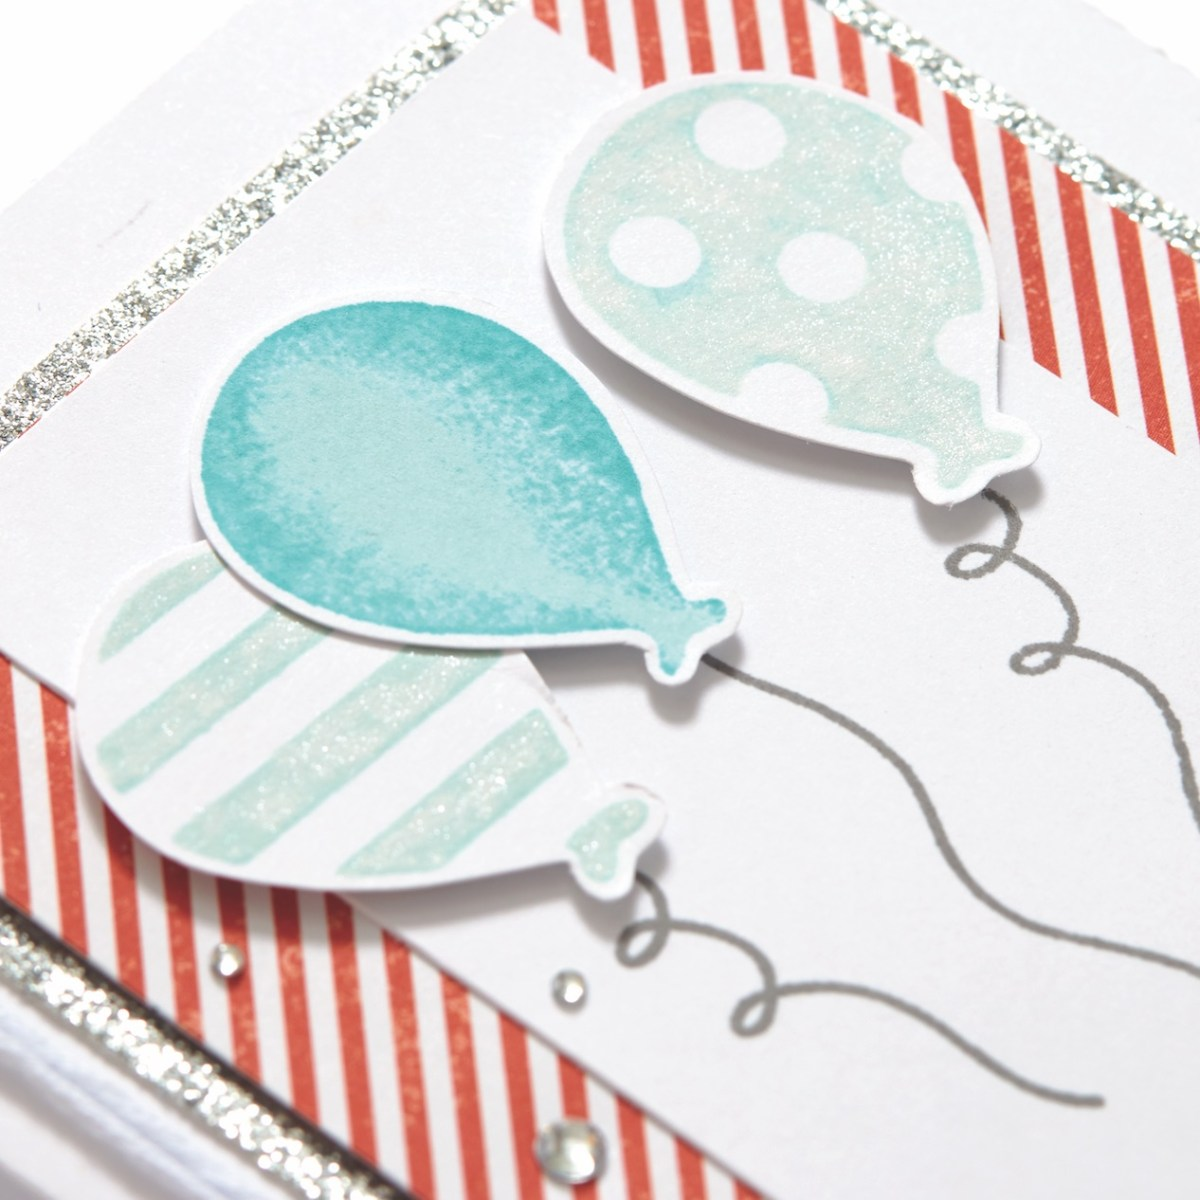 Make If from Your Heart #ctmh #closetomyheart #how-to #howto #book #pattern #cards #cardmaking #diy #sneak #peek